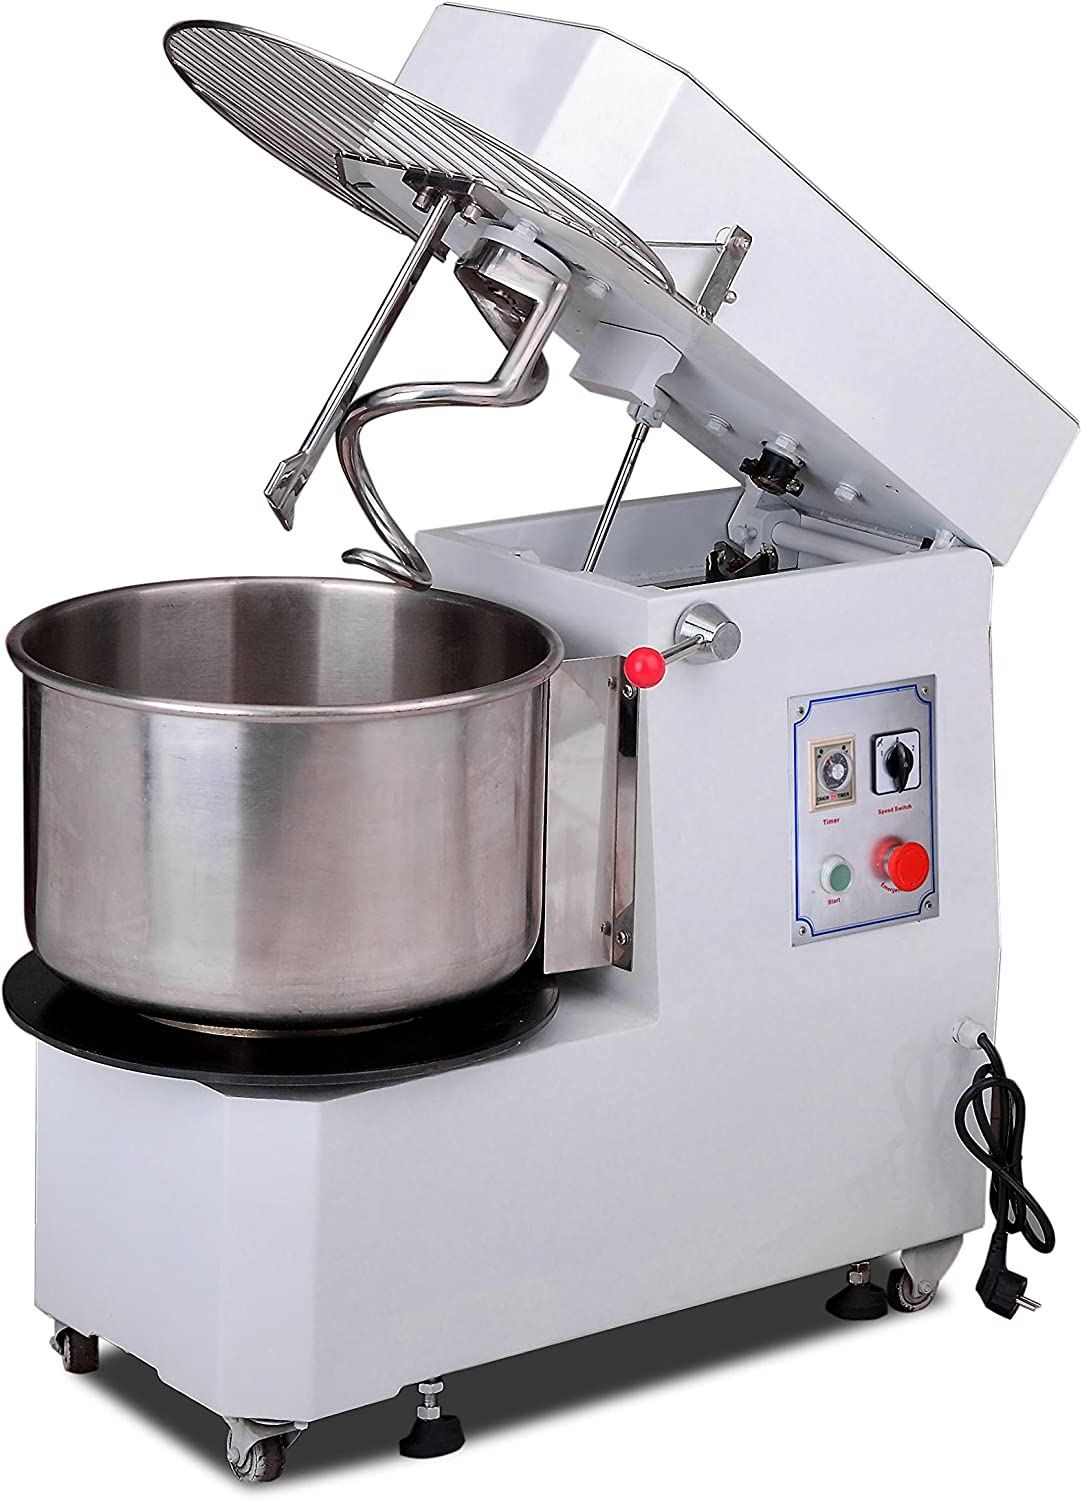 Hakka Commercial Dough Mixers Sale Special Price Mesa Mall 40 Quart 2 Steel Stainless R Speed